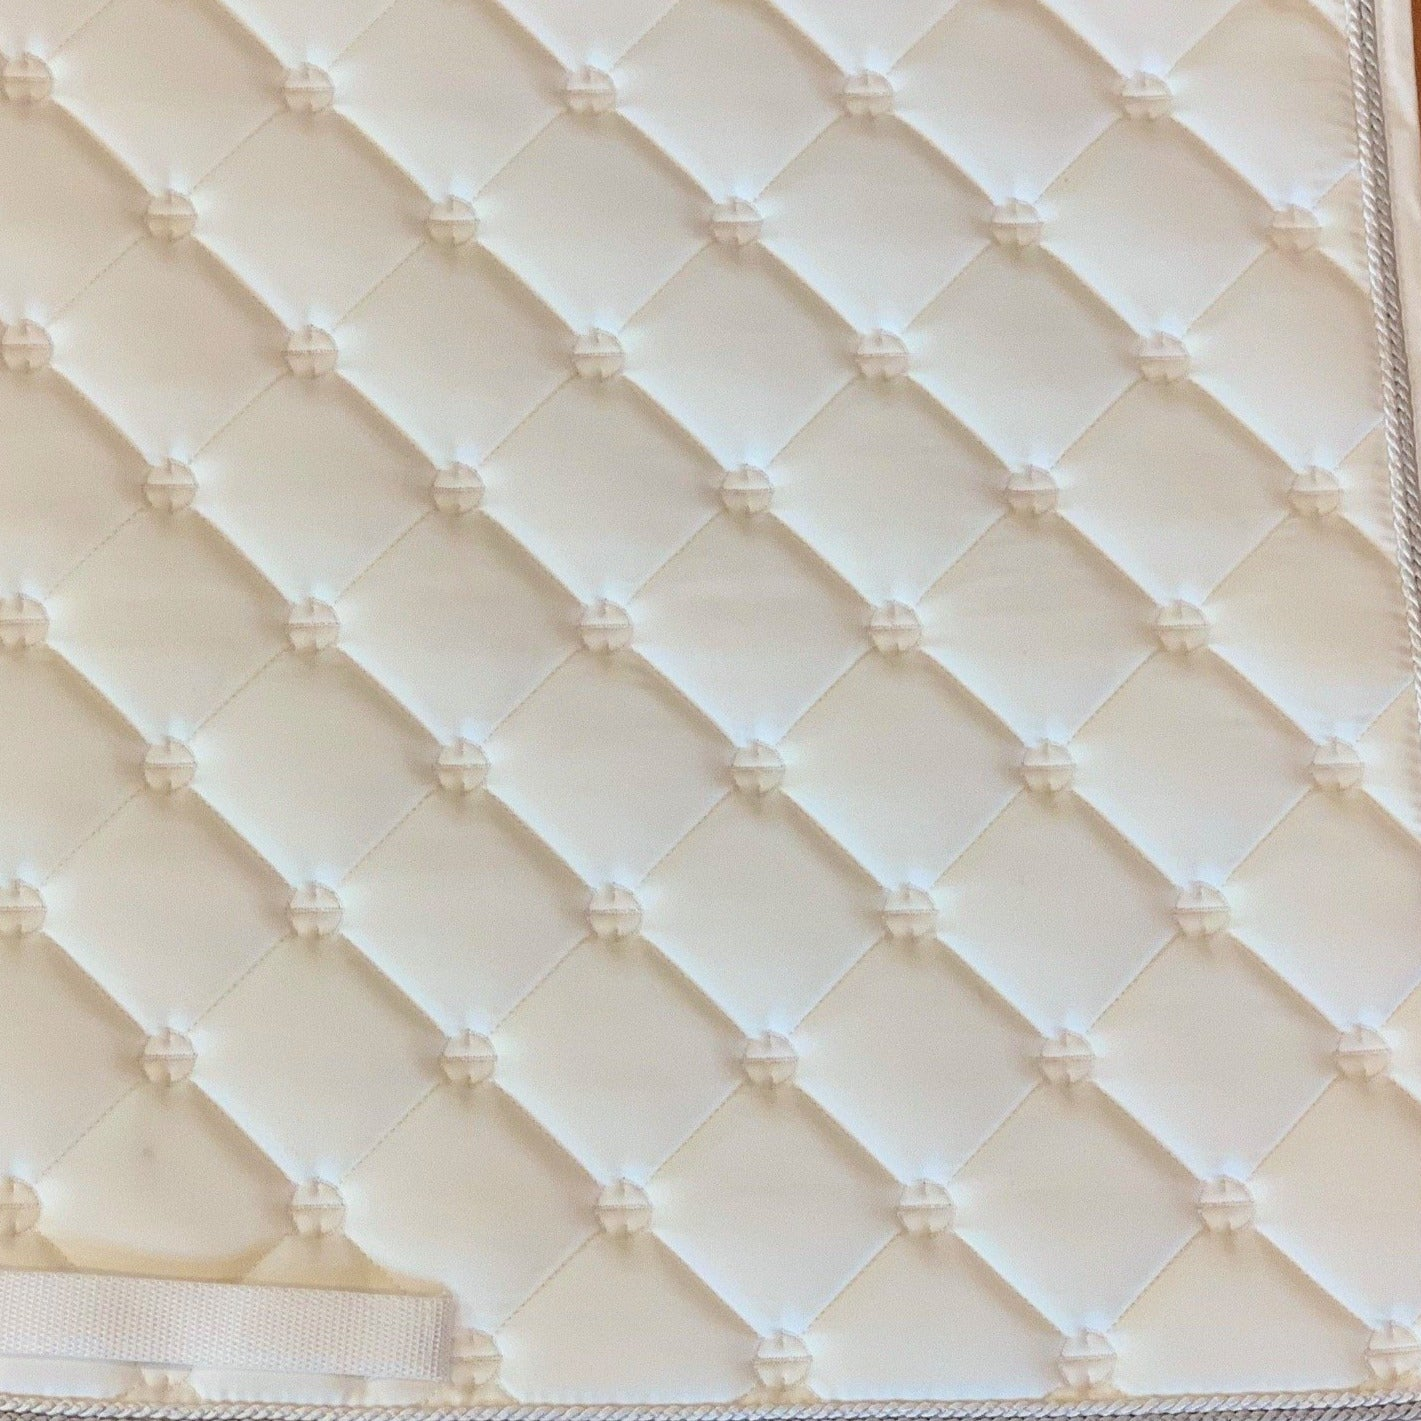 Luxe Dressage Saddle Pad - White